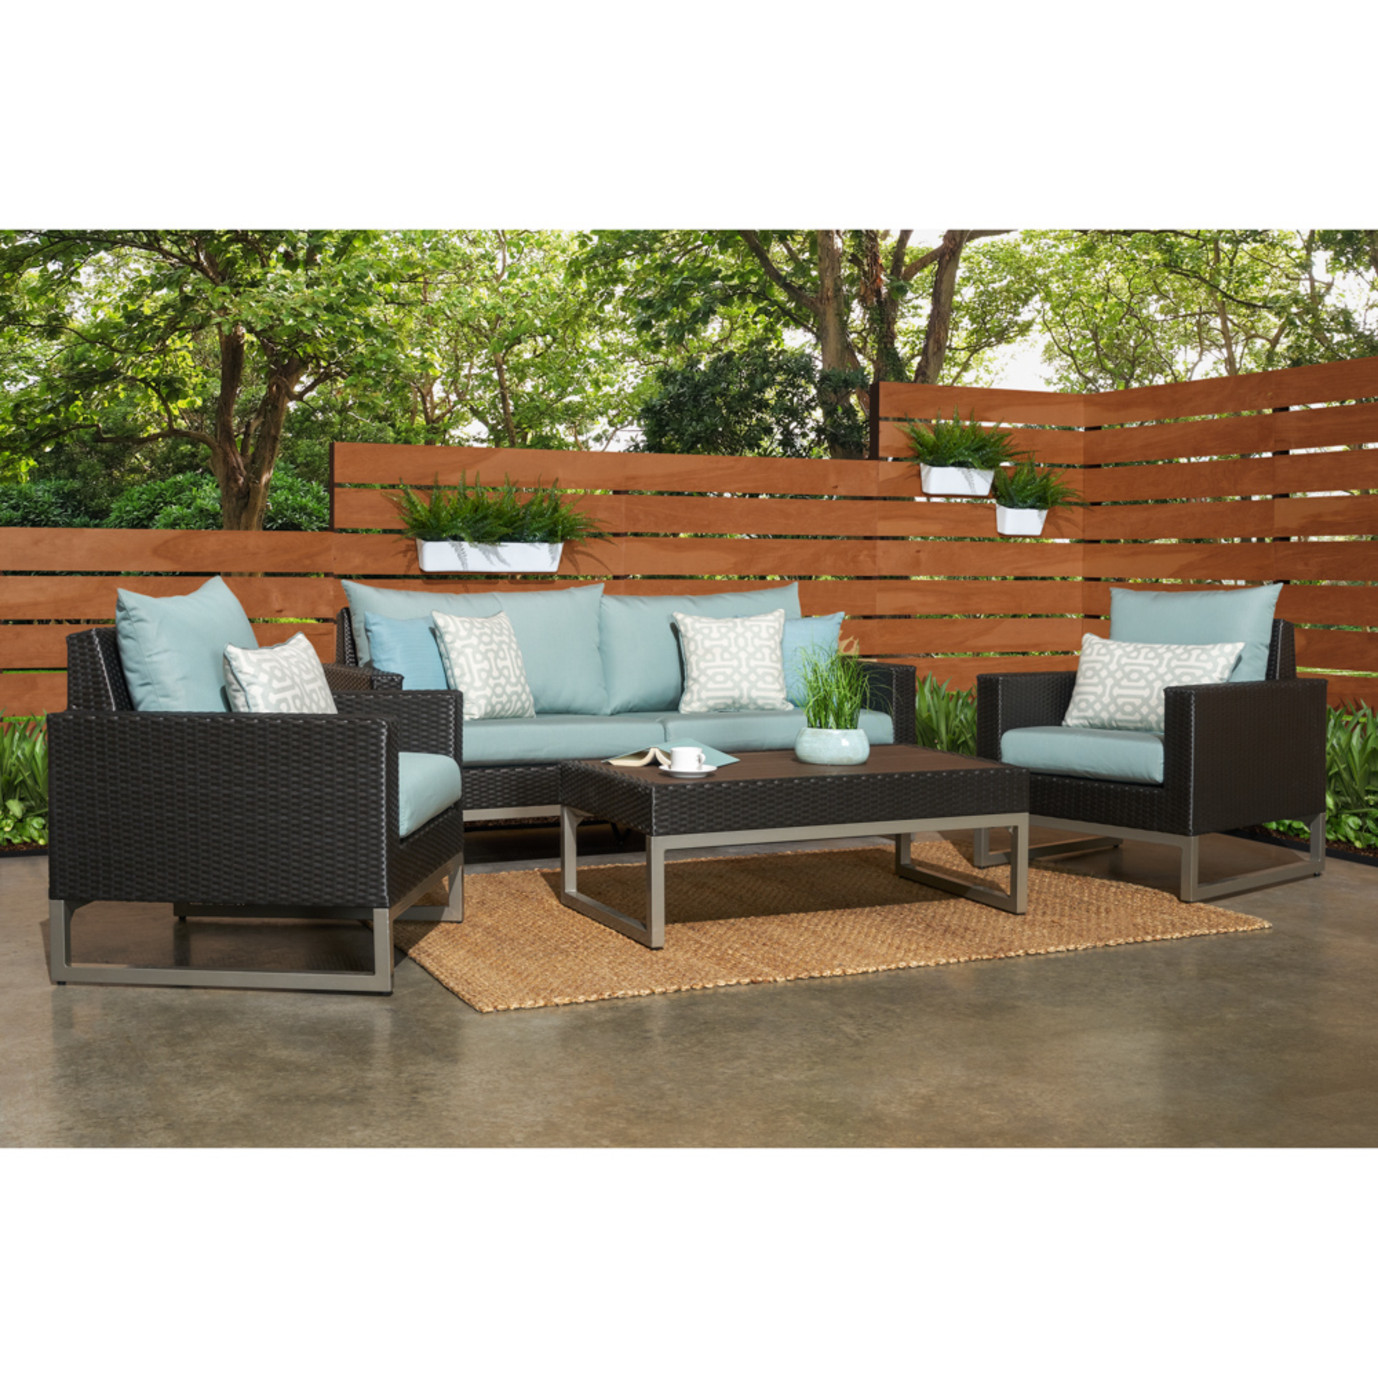 Milo™ Espresso 4pc Seating Set - Spa Blue